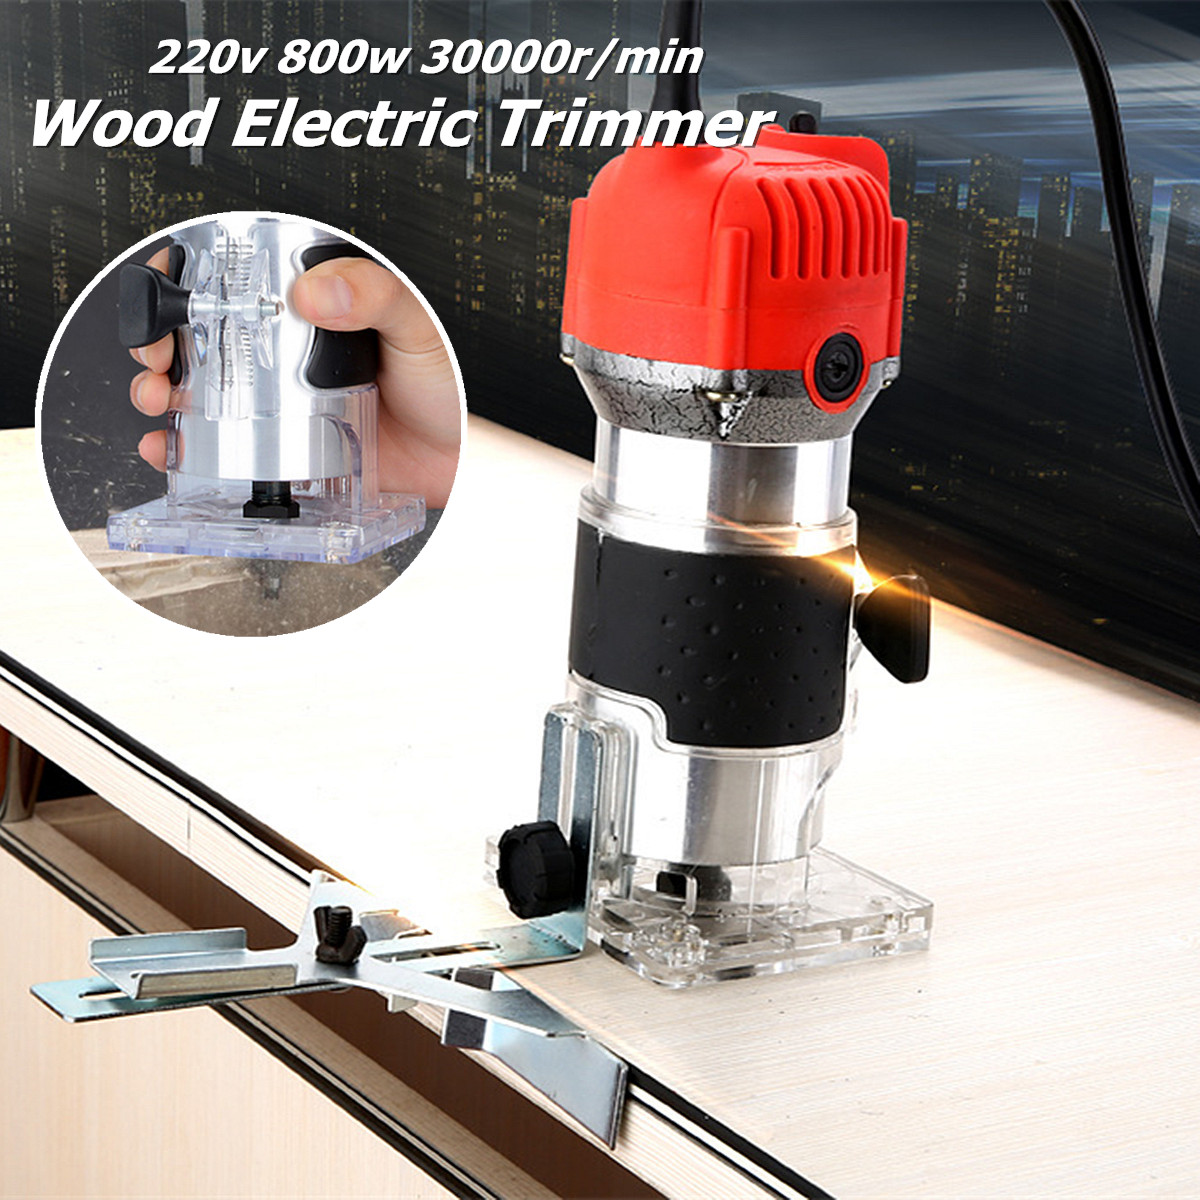 220V 800w 30000r/min 50HZ Collet 6mm AU Plug Corded Electric Hand Trimmer Wood Laminator Router Joiners Tools Aluminum+Plastic